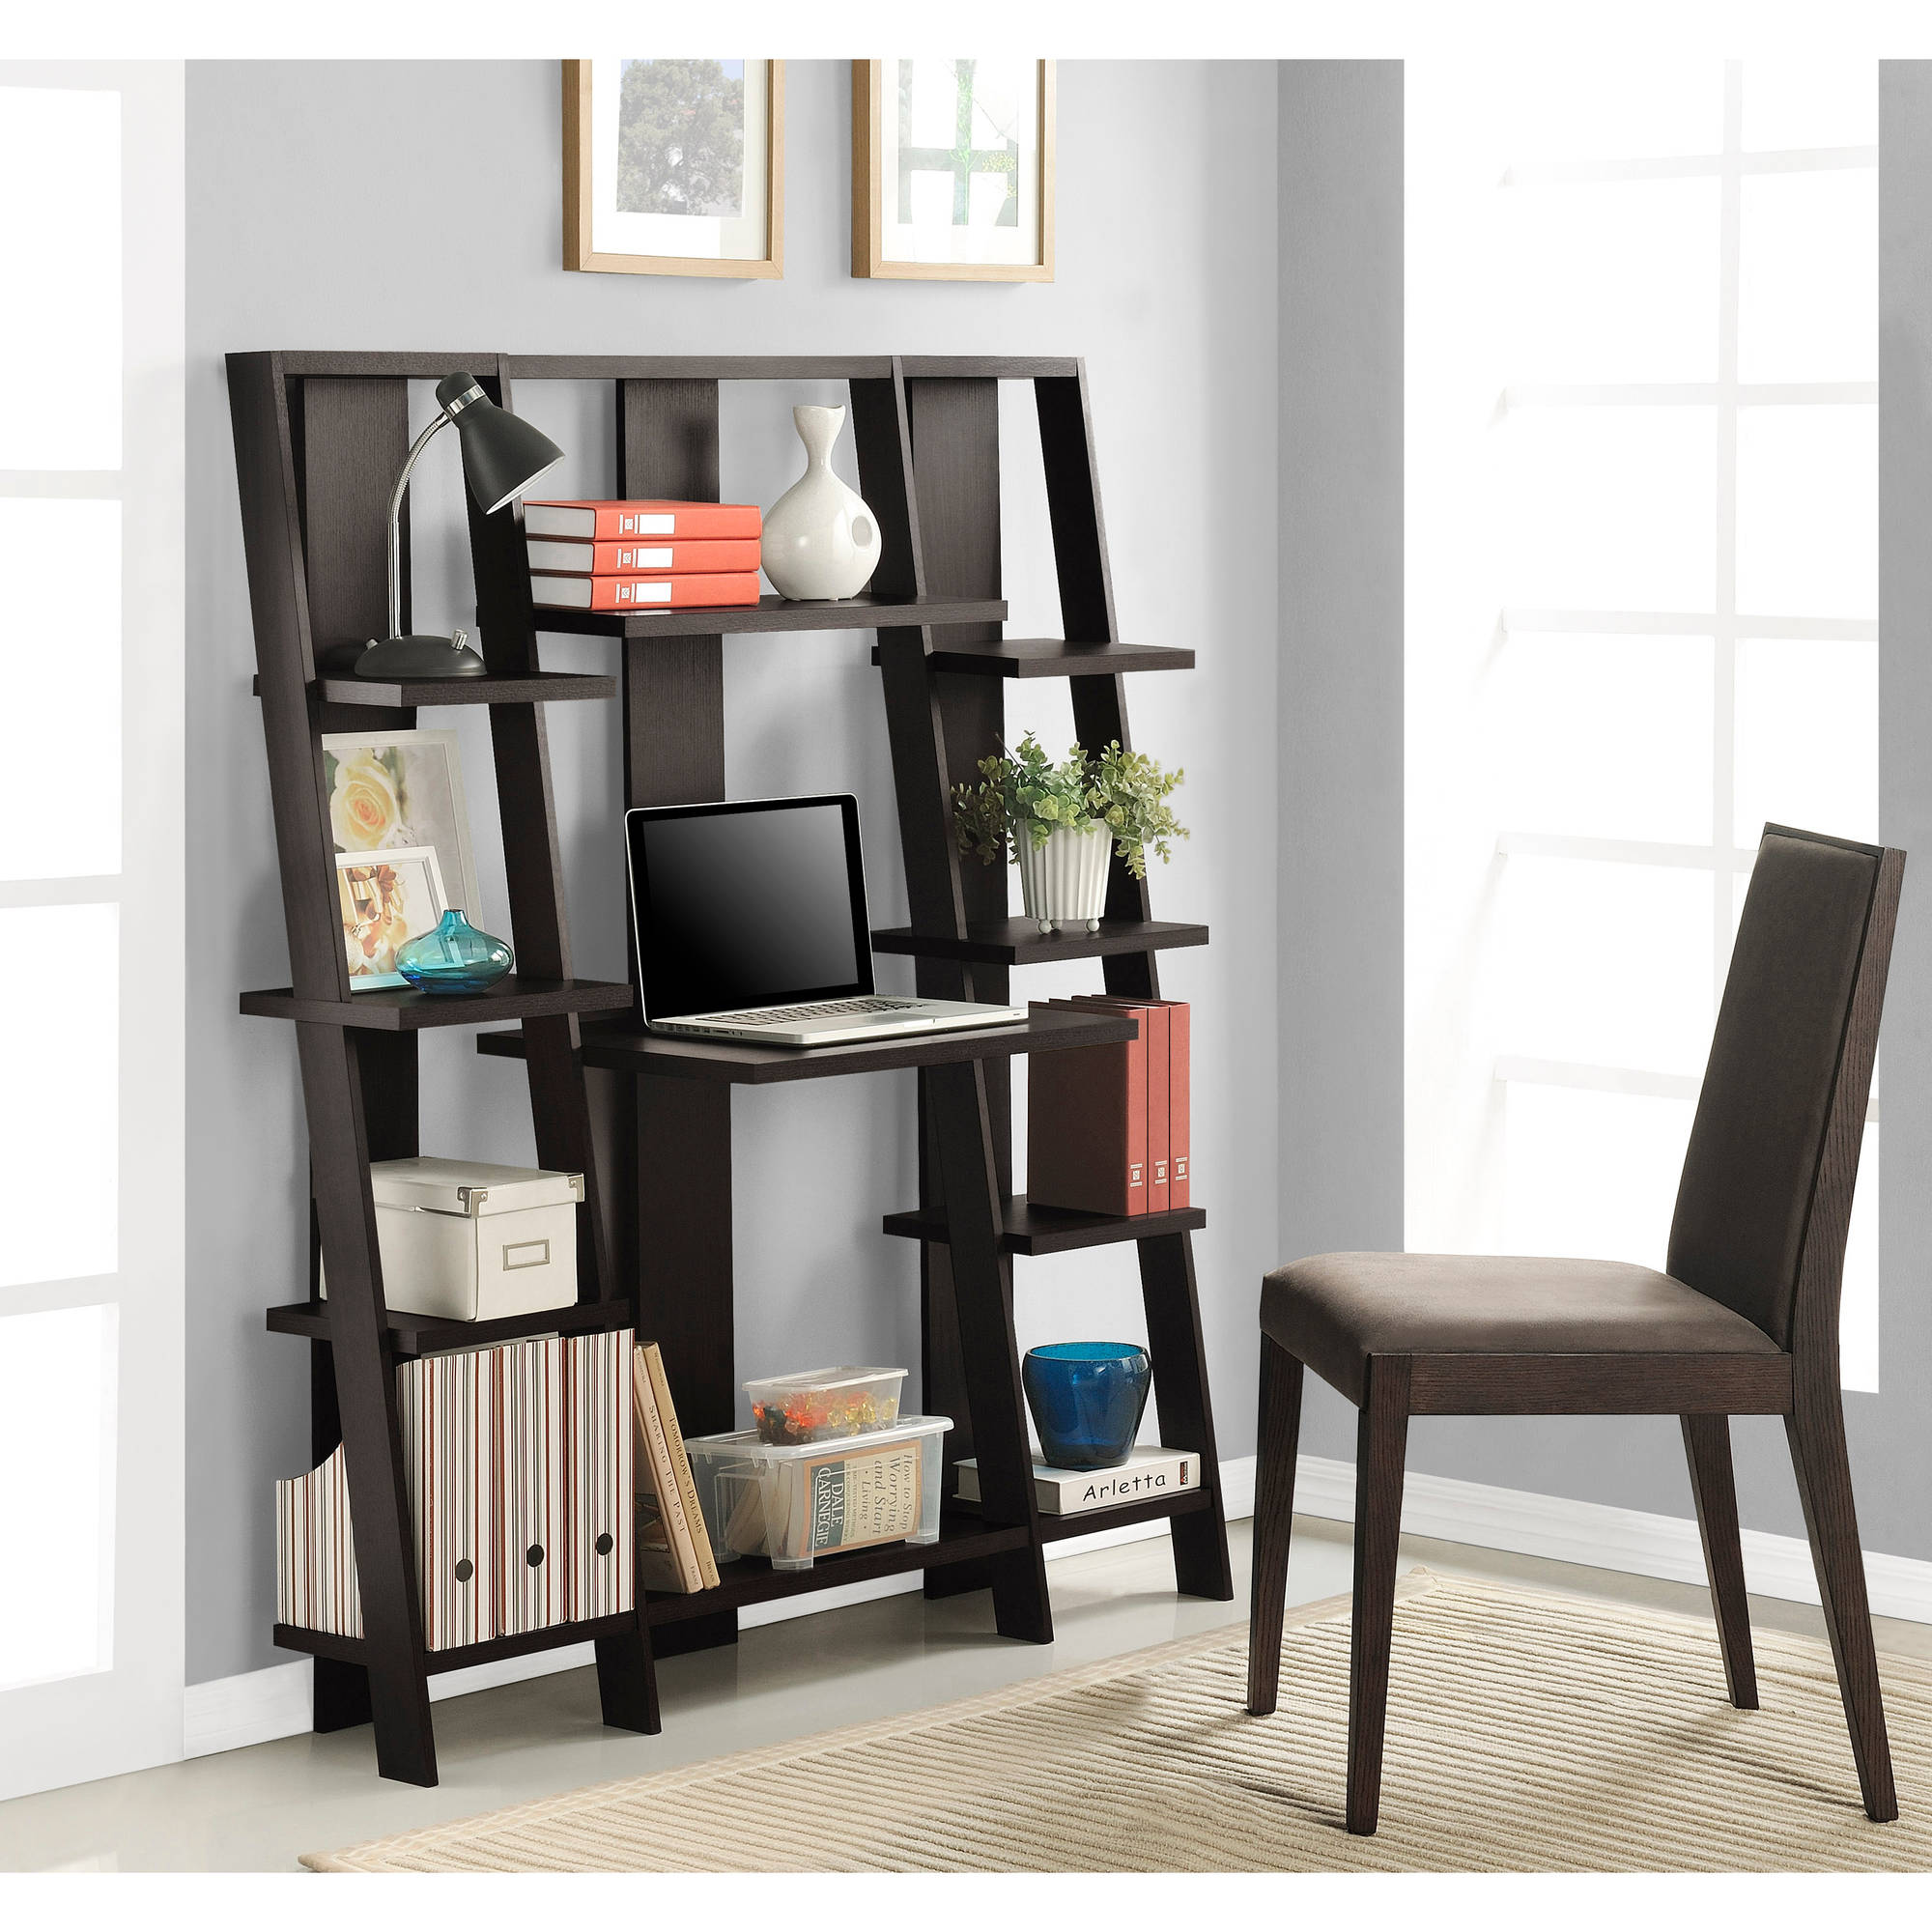 drawers your discover types elegant idolza dressers at leaning with bedroom tier for beautiful bookcases shelf delaris bookcase of ladder guide hayneedle